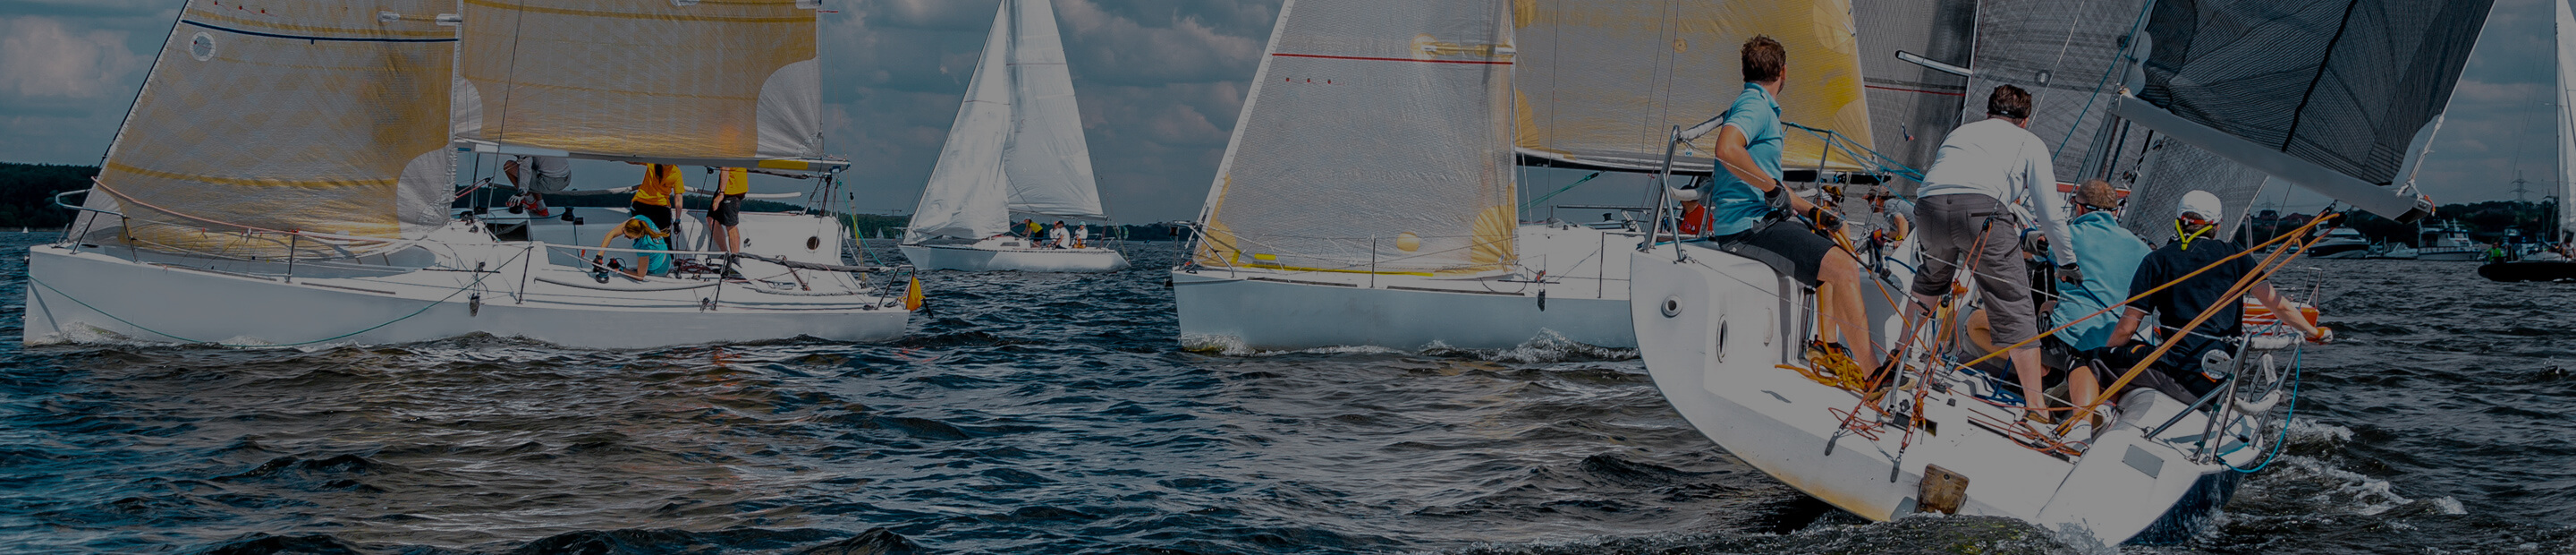 Sailing regattas and places in Bahamas